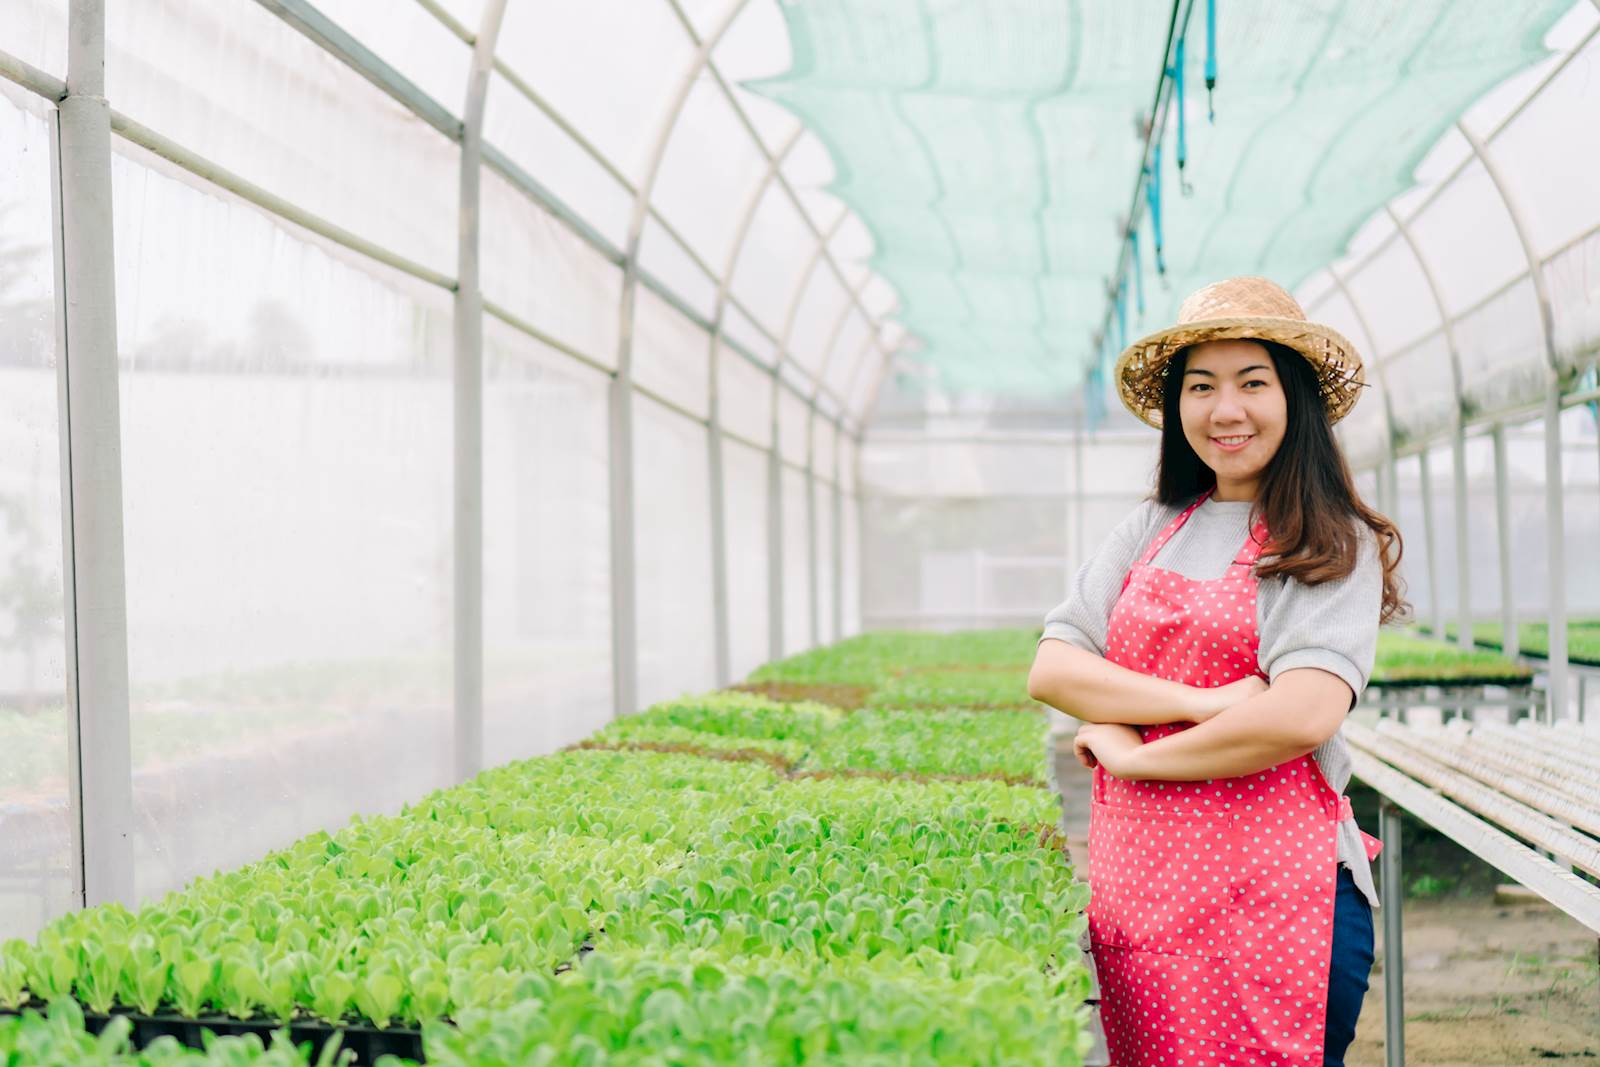 Woman standing in greenhouse with plants